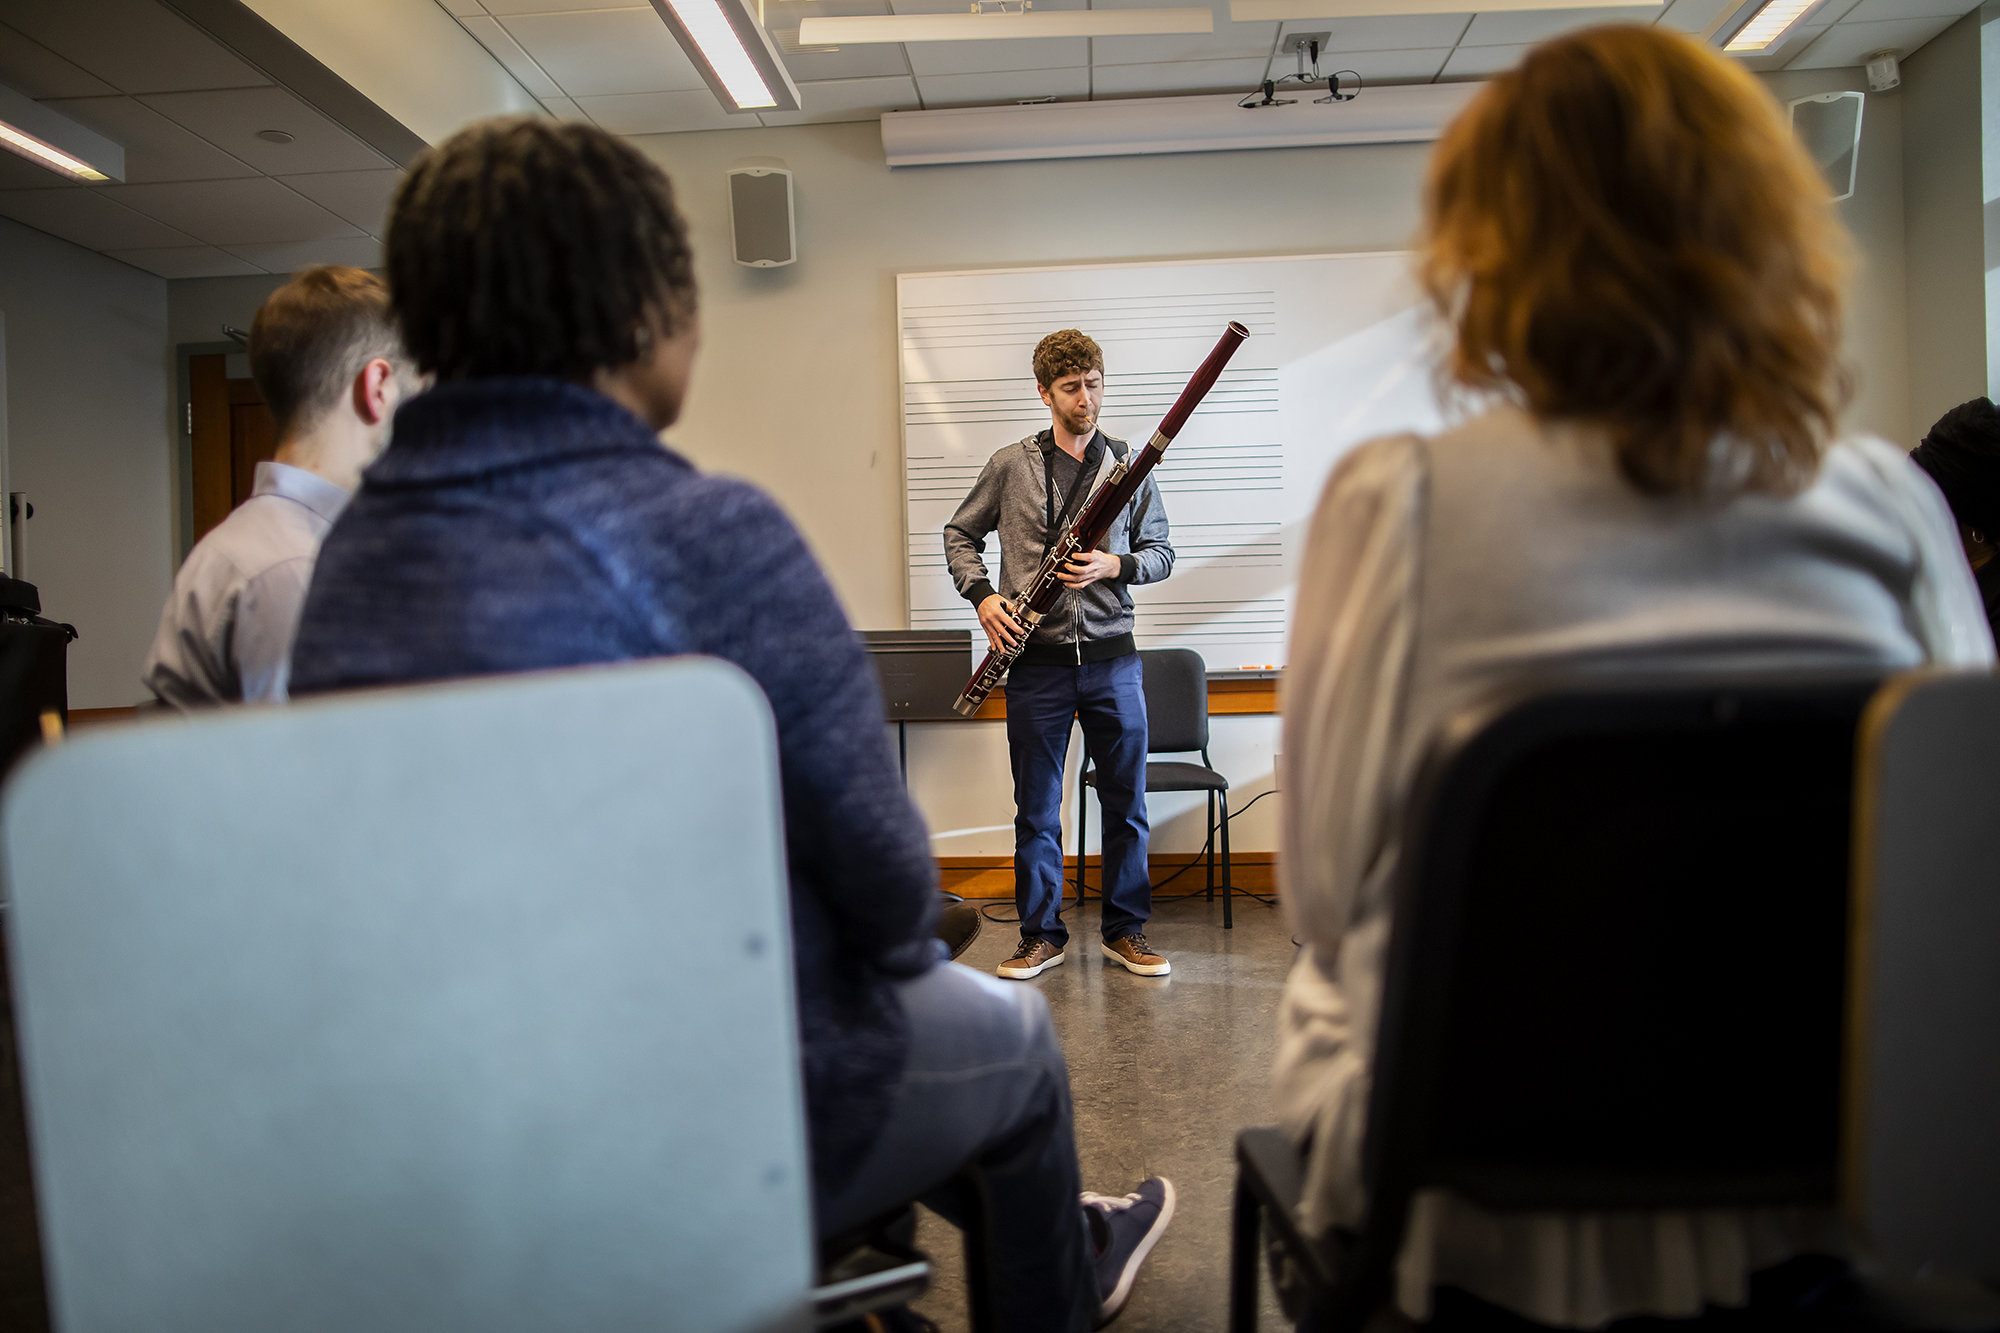 Bassoonist Doron Laznow performs at a Creative Expression Through Music session. Photo by Eric Sucar/Penn University Communications.